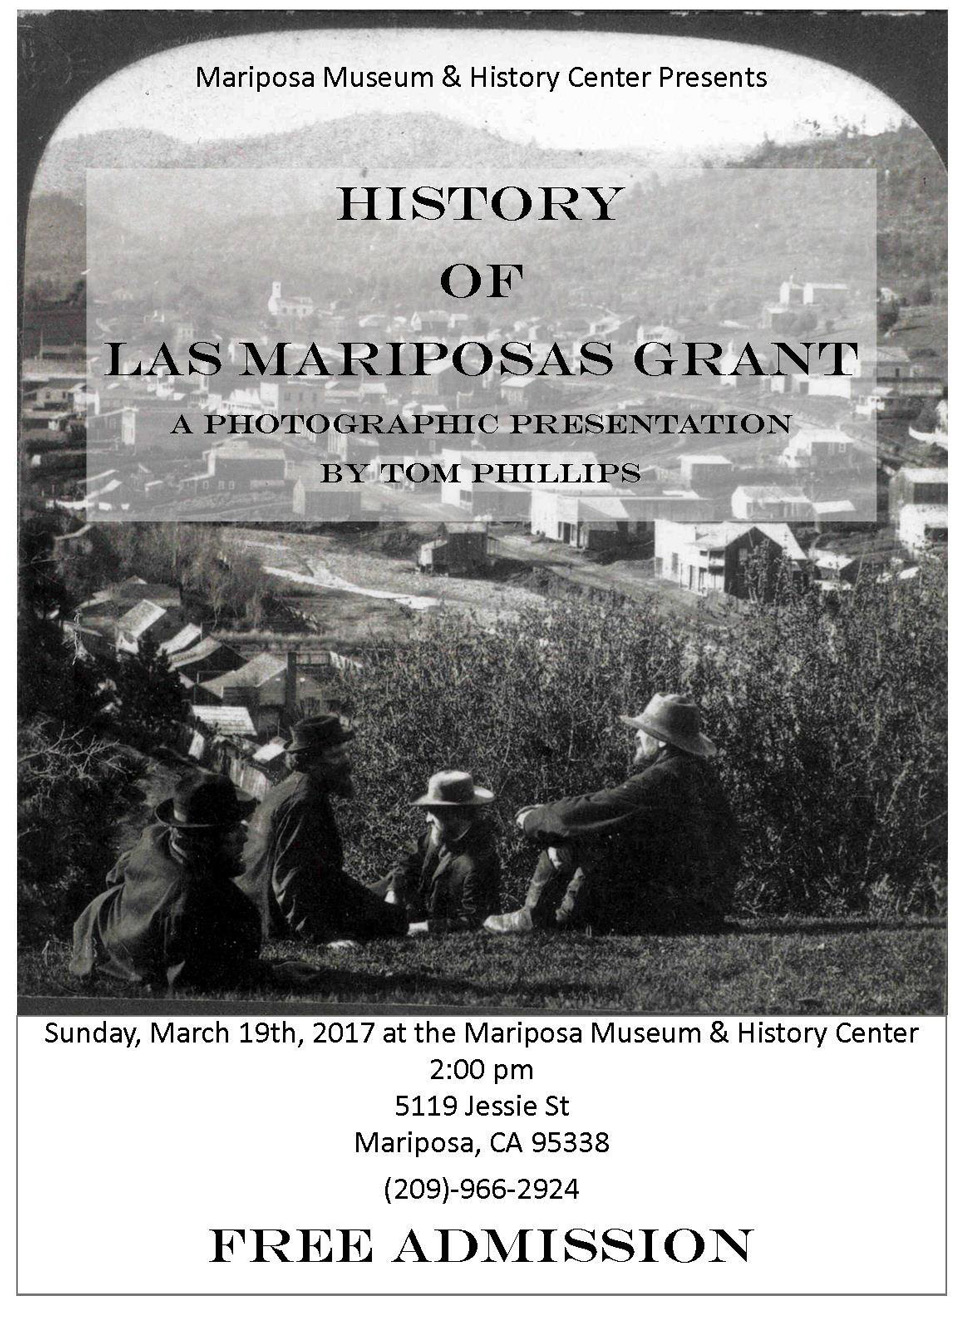 mariposa museum and history center history of the las mariposas grant tom phillips